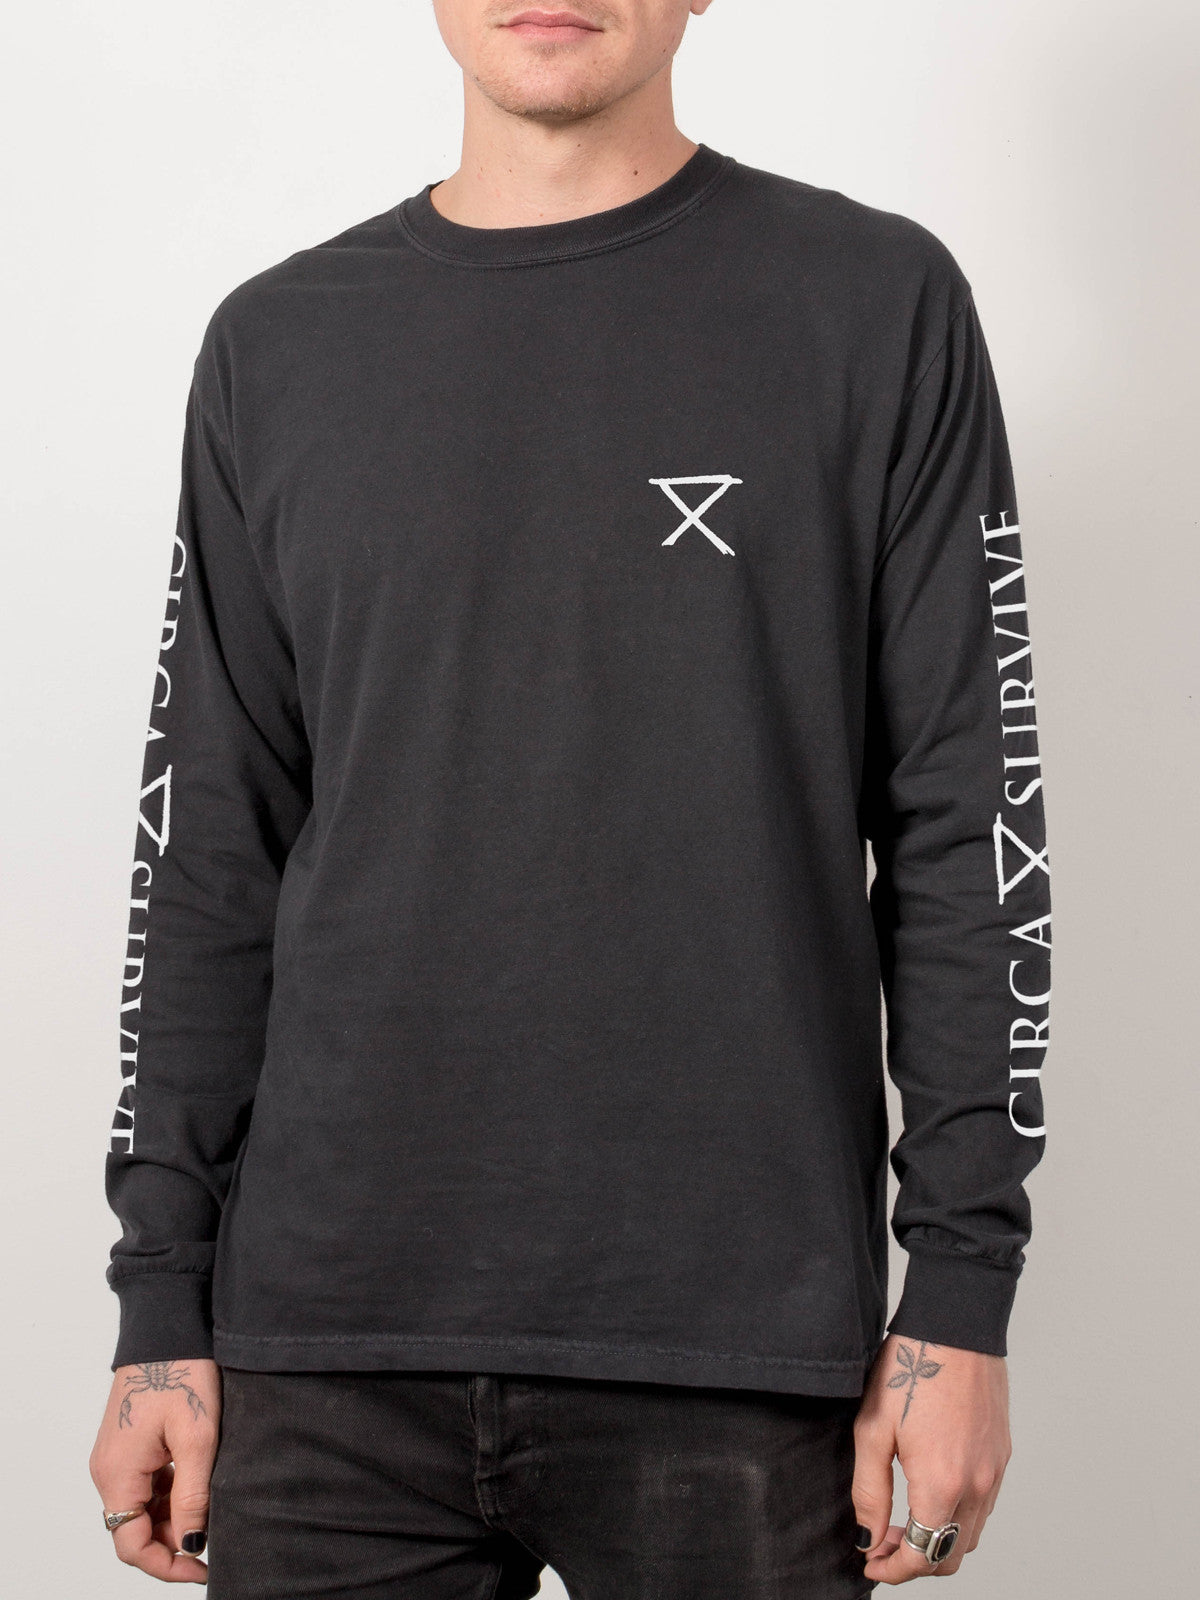 Circa Survive - Pigment Dyed Longsleeve - Merch Limited